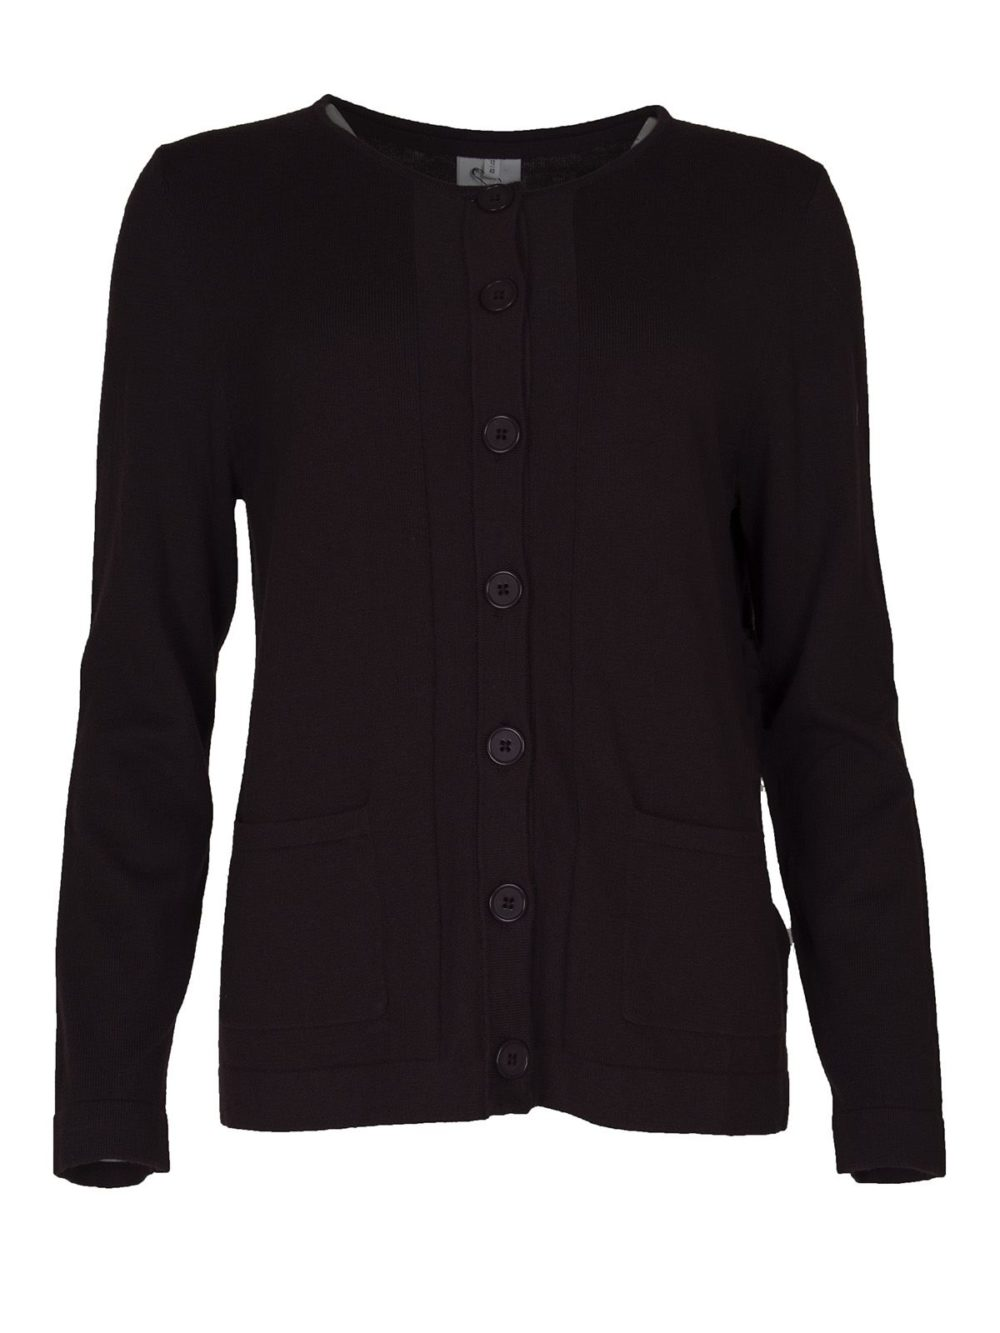 Hatton Cardigan